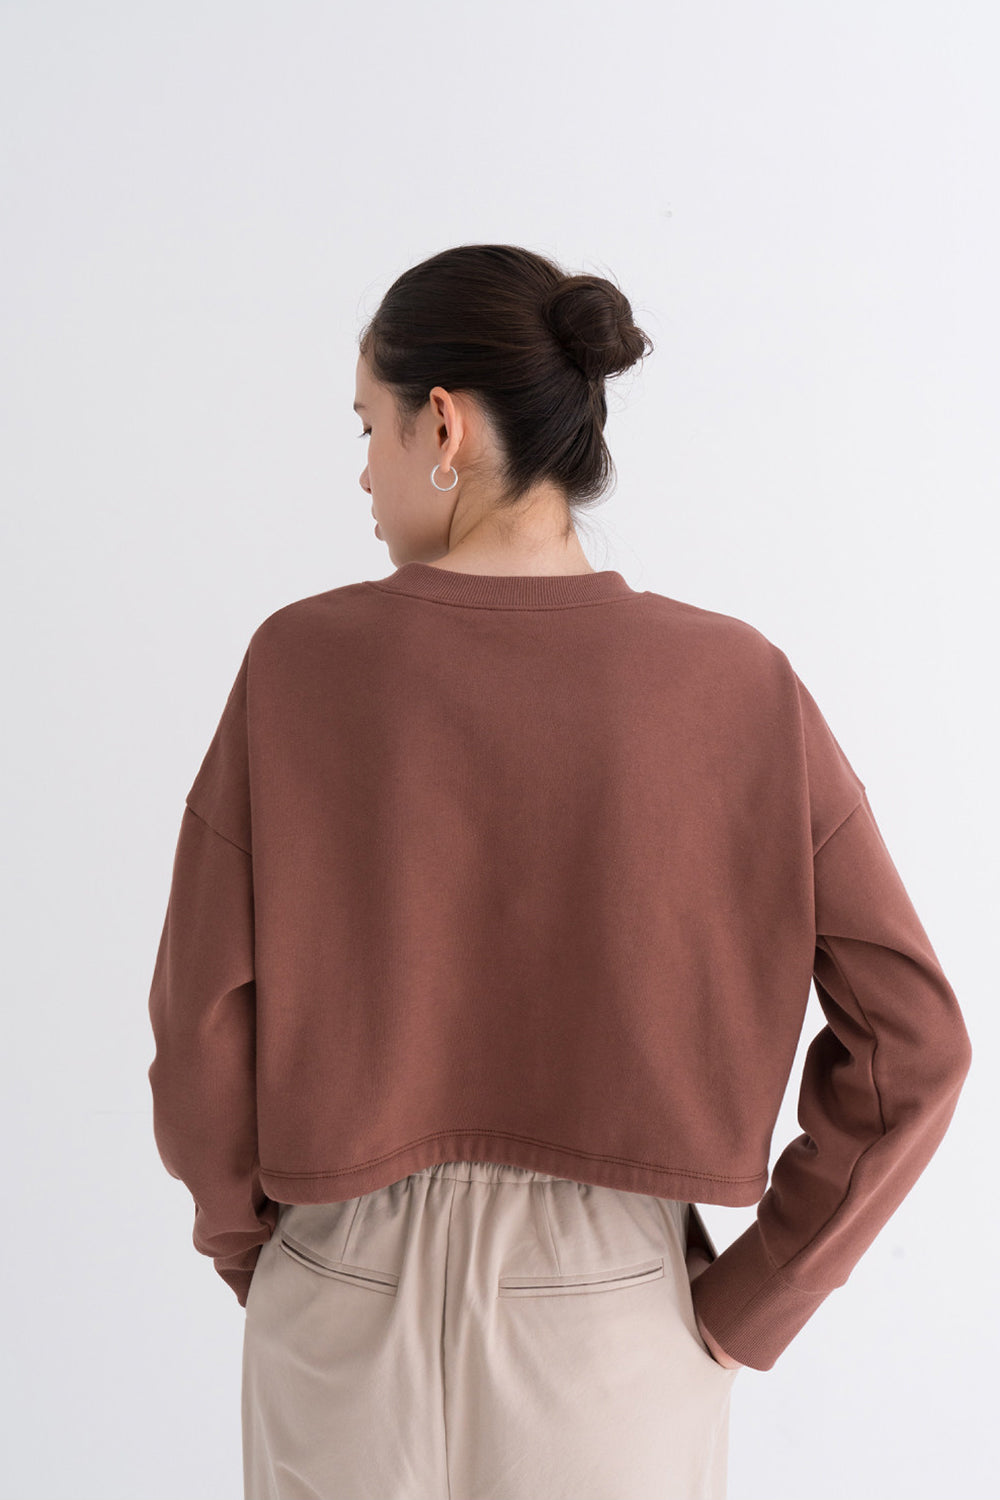 NOTA Essential Bottom String Mtm Brown Modest Loose-Fitting Ladies Top With Drawstring Hemline, Round Neck, Long Sleeves